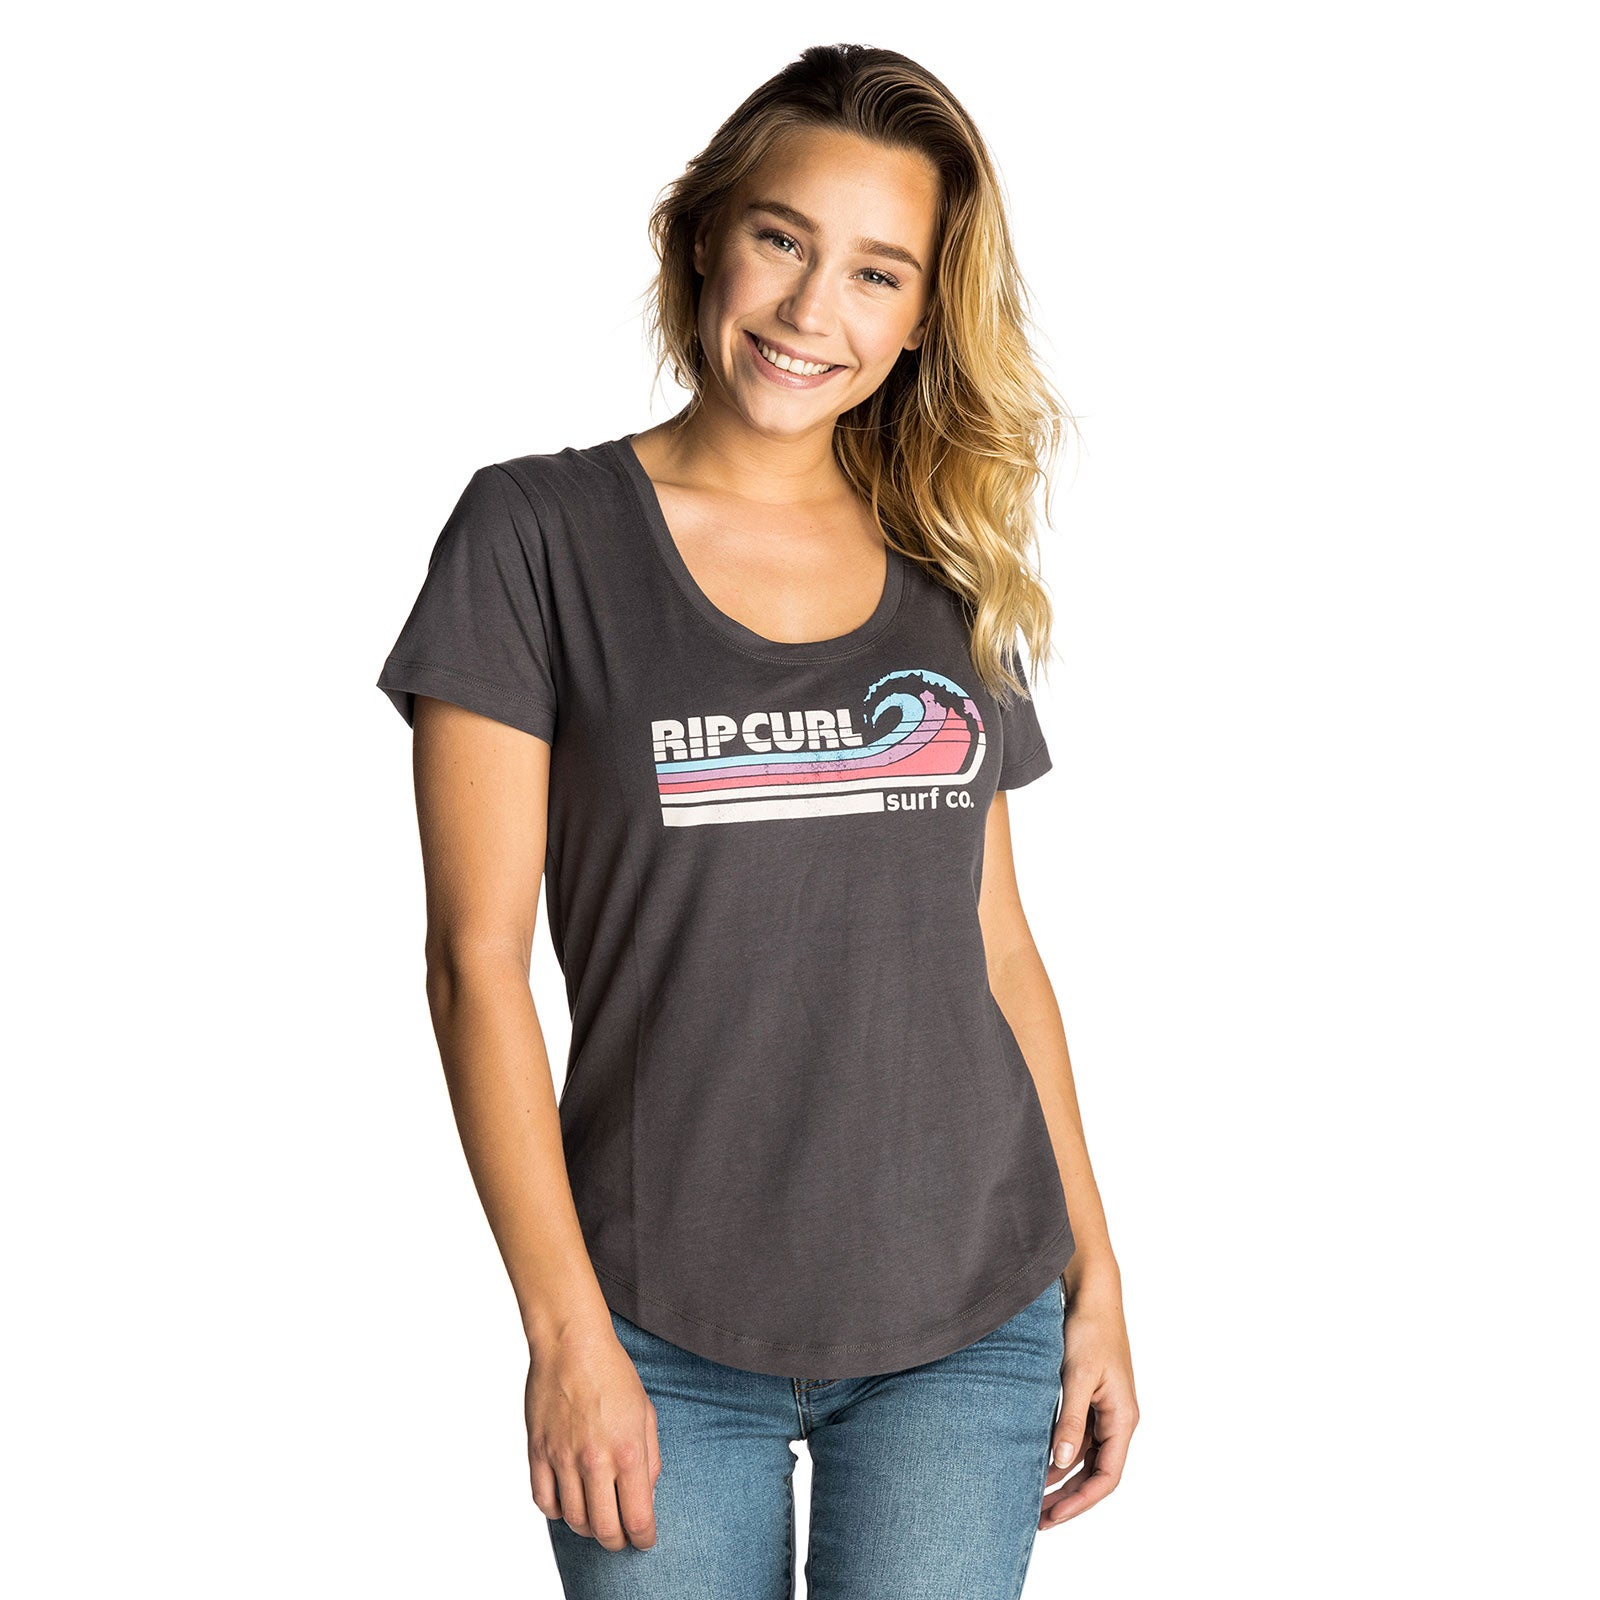 bf49dbc0b6 Details about Rip Curl Surf Co Womens T-shirt Long Sleeve - Asphalt All  Sizes